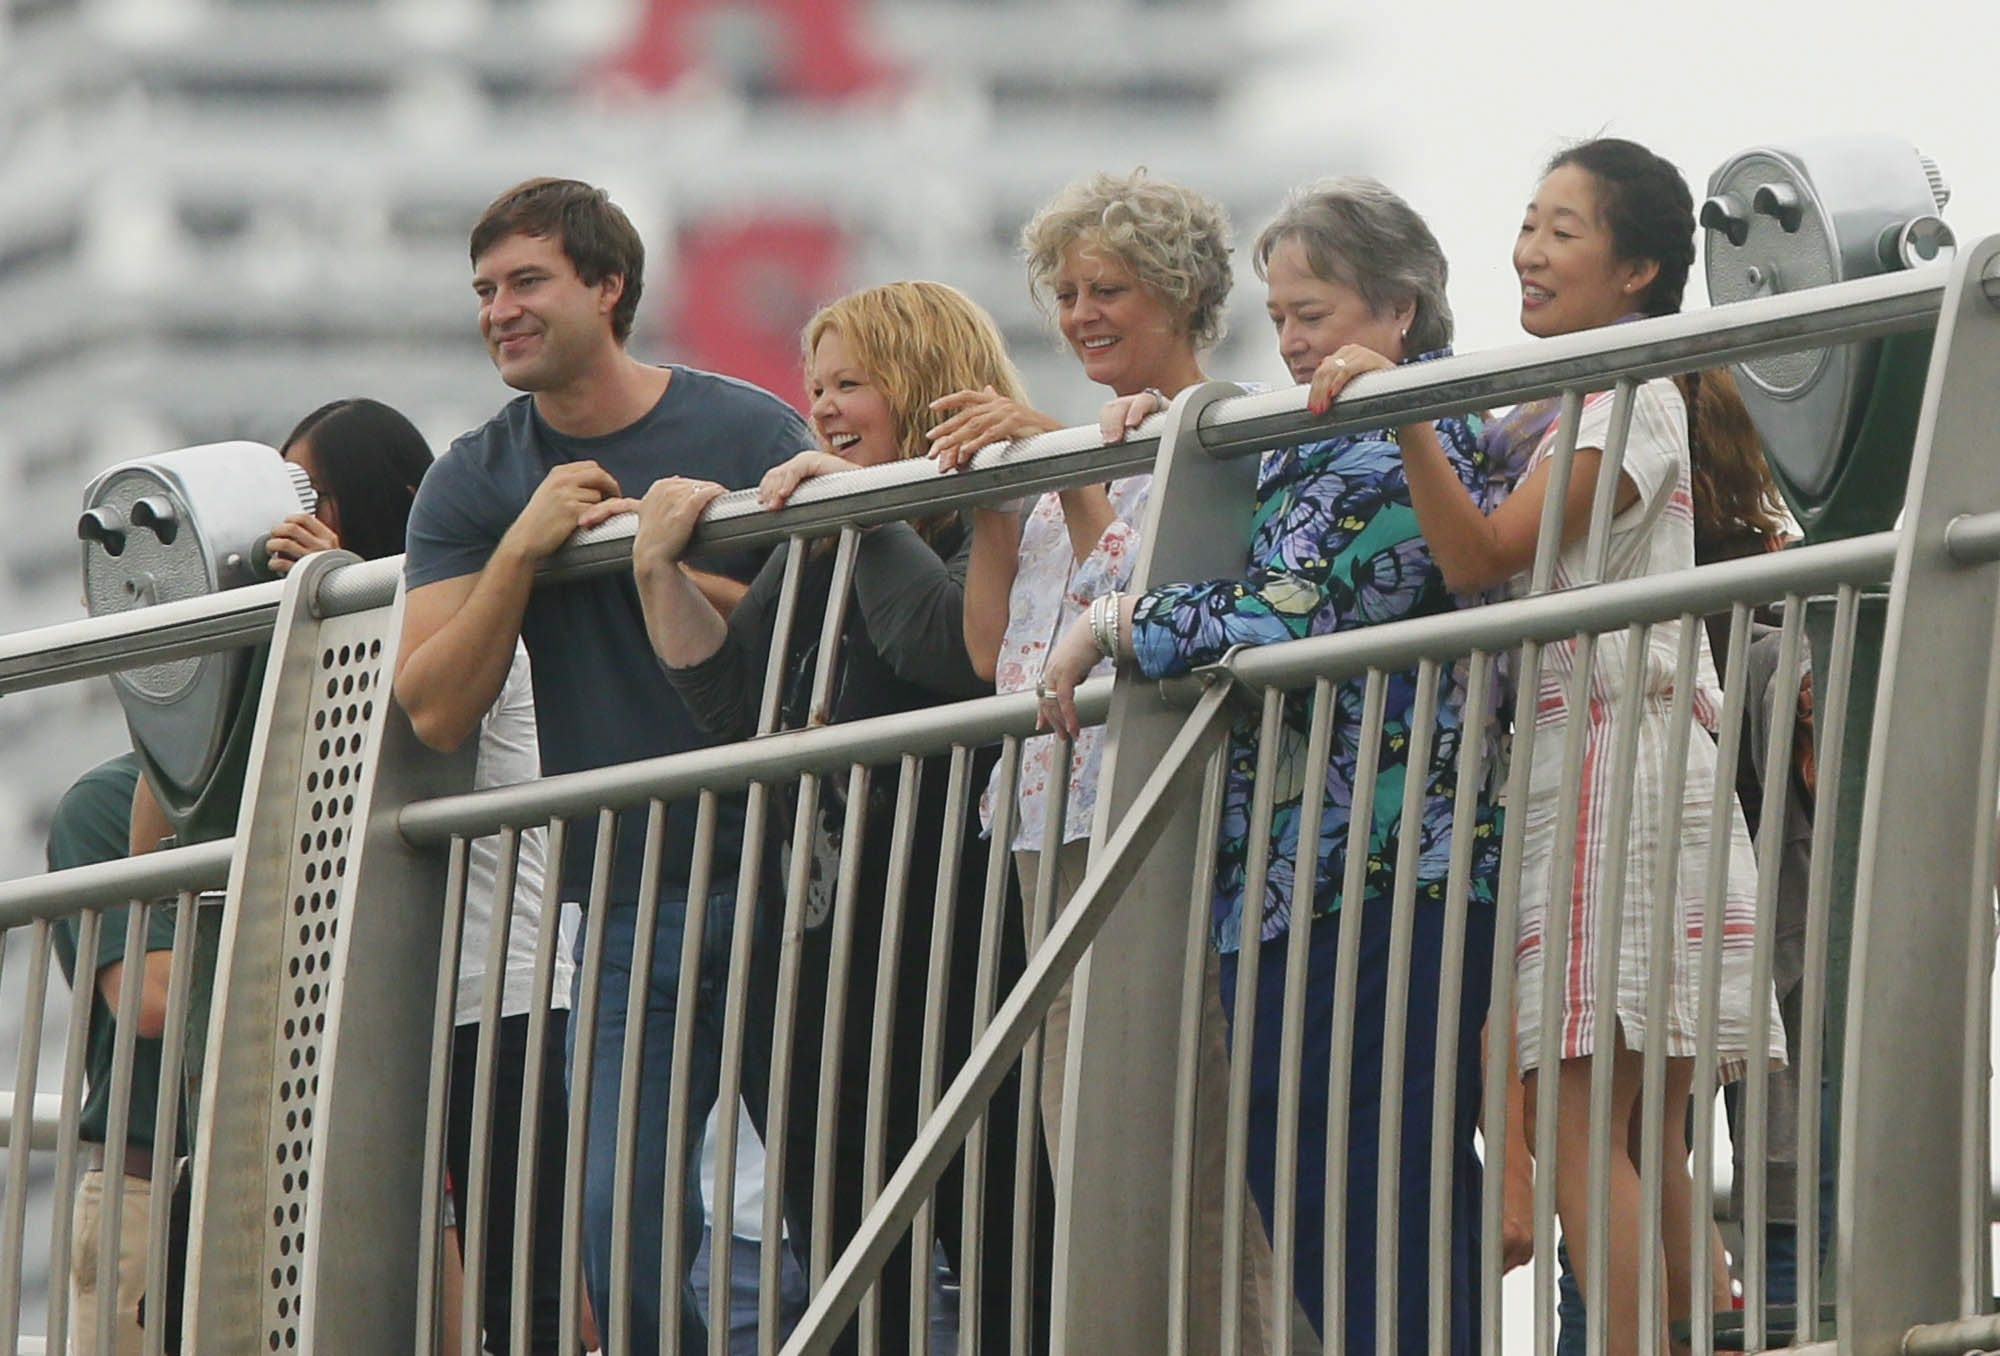 From left, actors Mark Duplass, Melissa McCarthy, Susan Sarandon, Kathy Bates and Sandra Oh film a scene on the Observation Deck. See a gallery of photos at BuffaloNews.com.